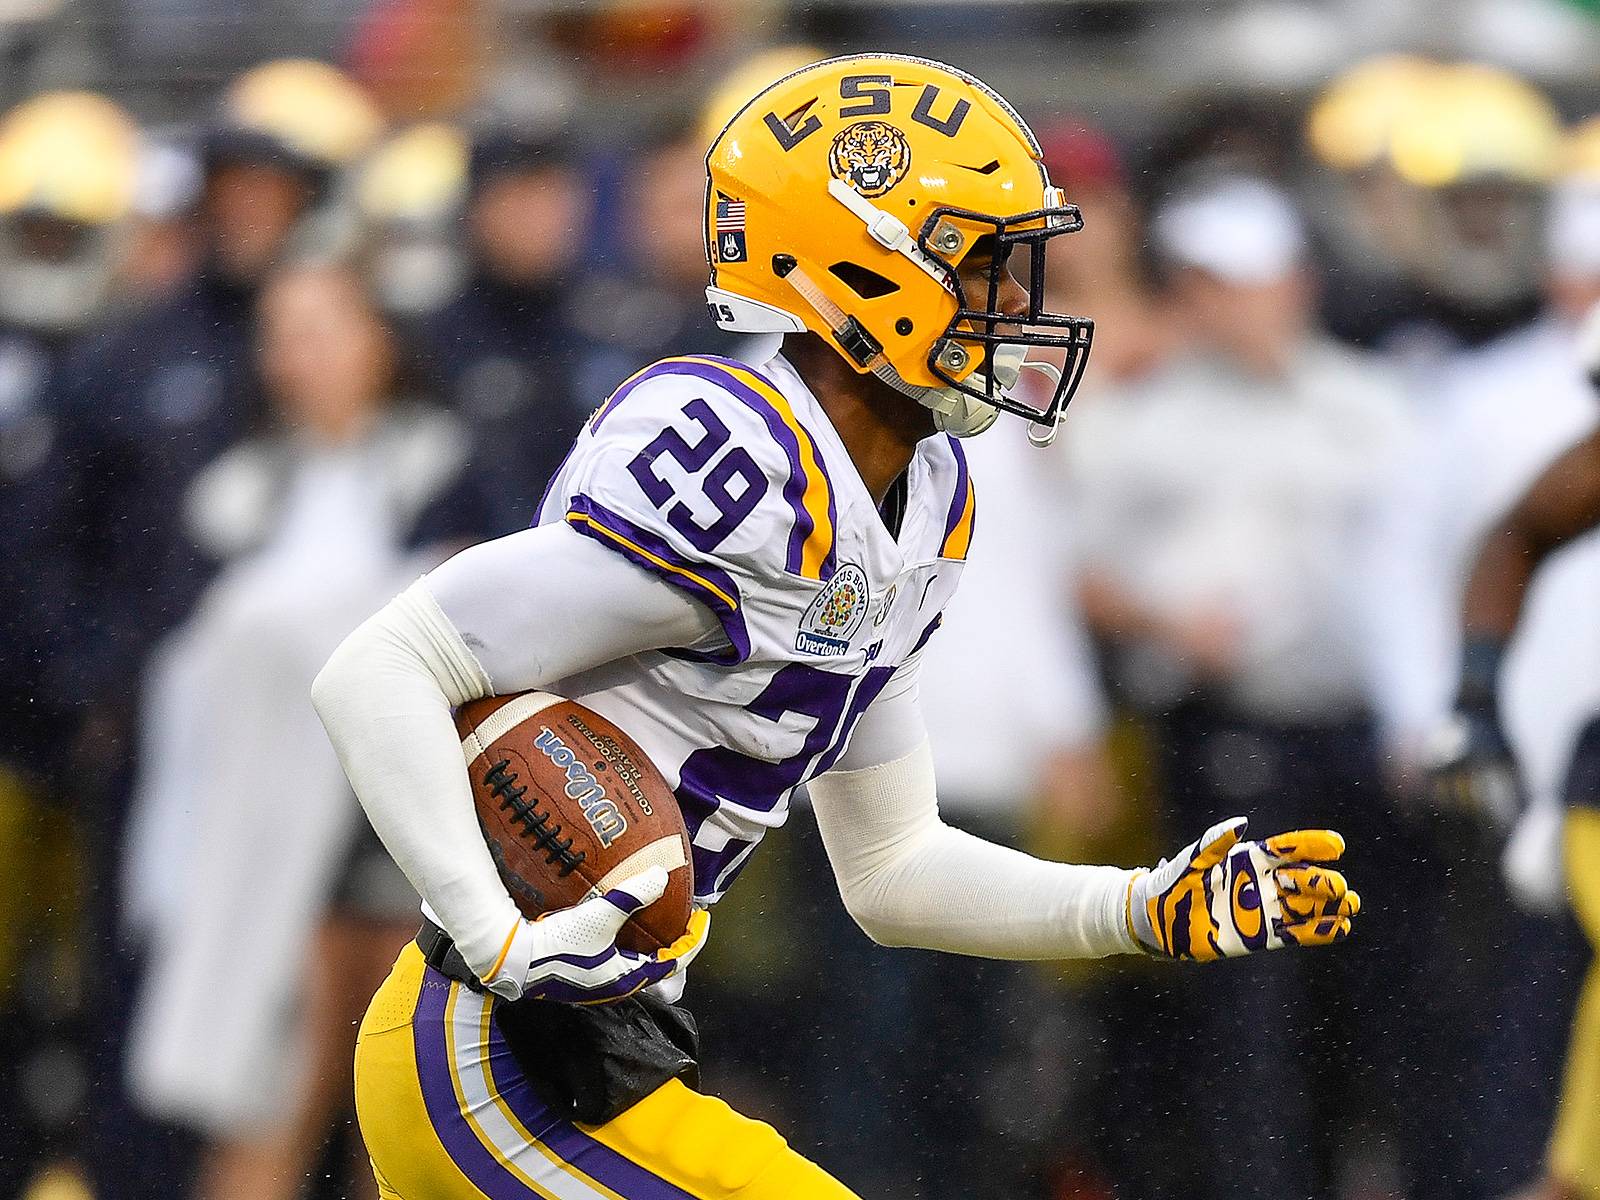 LSU Greedy Williams